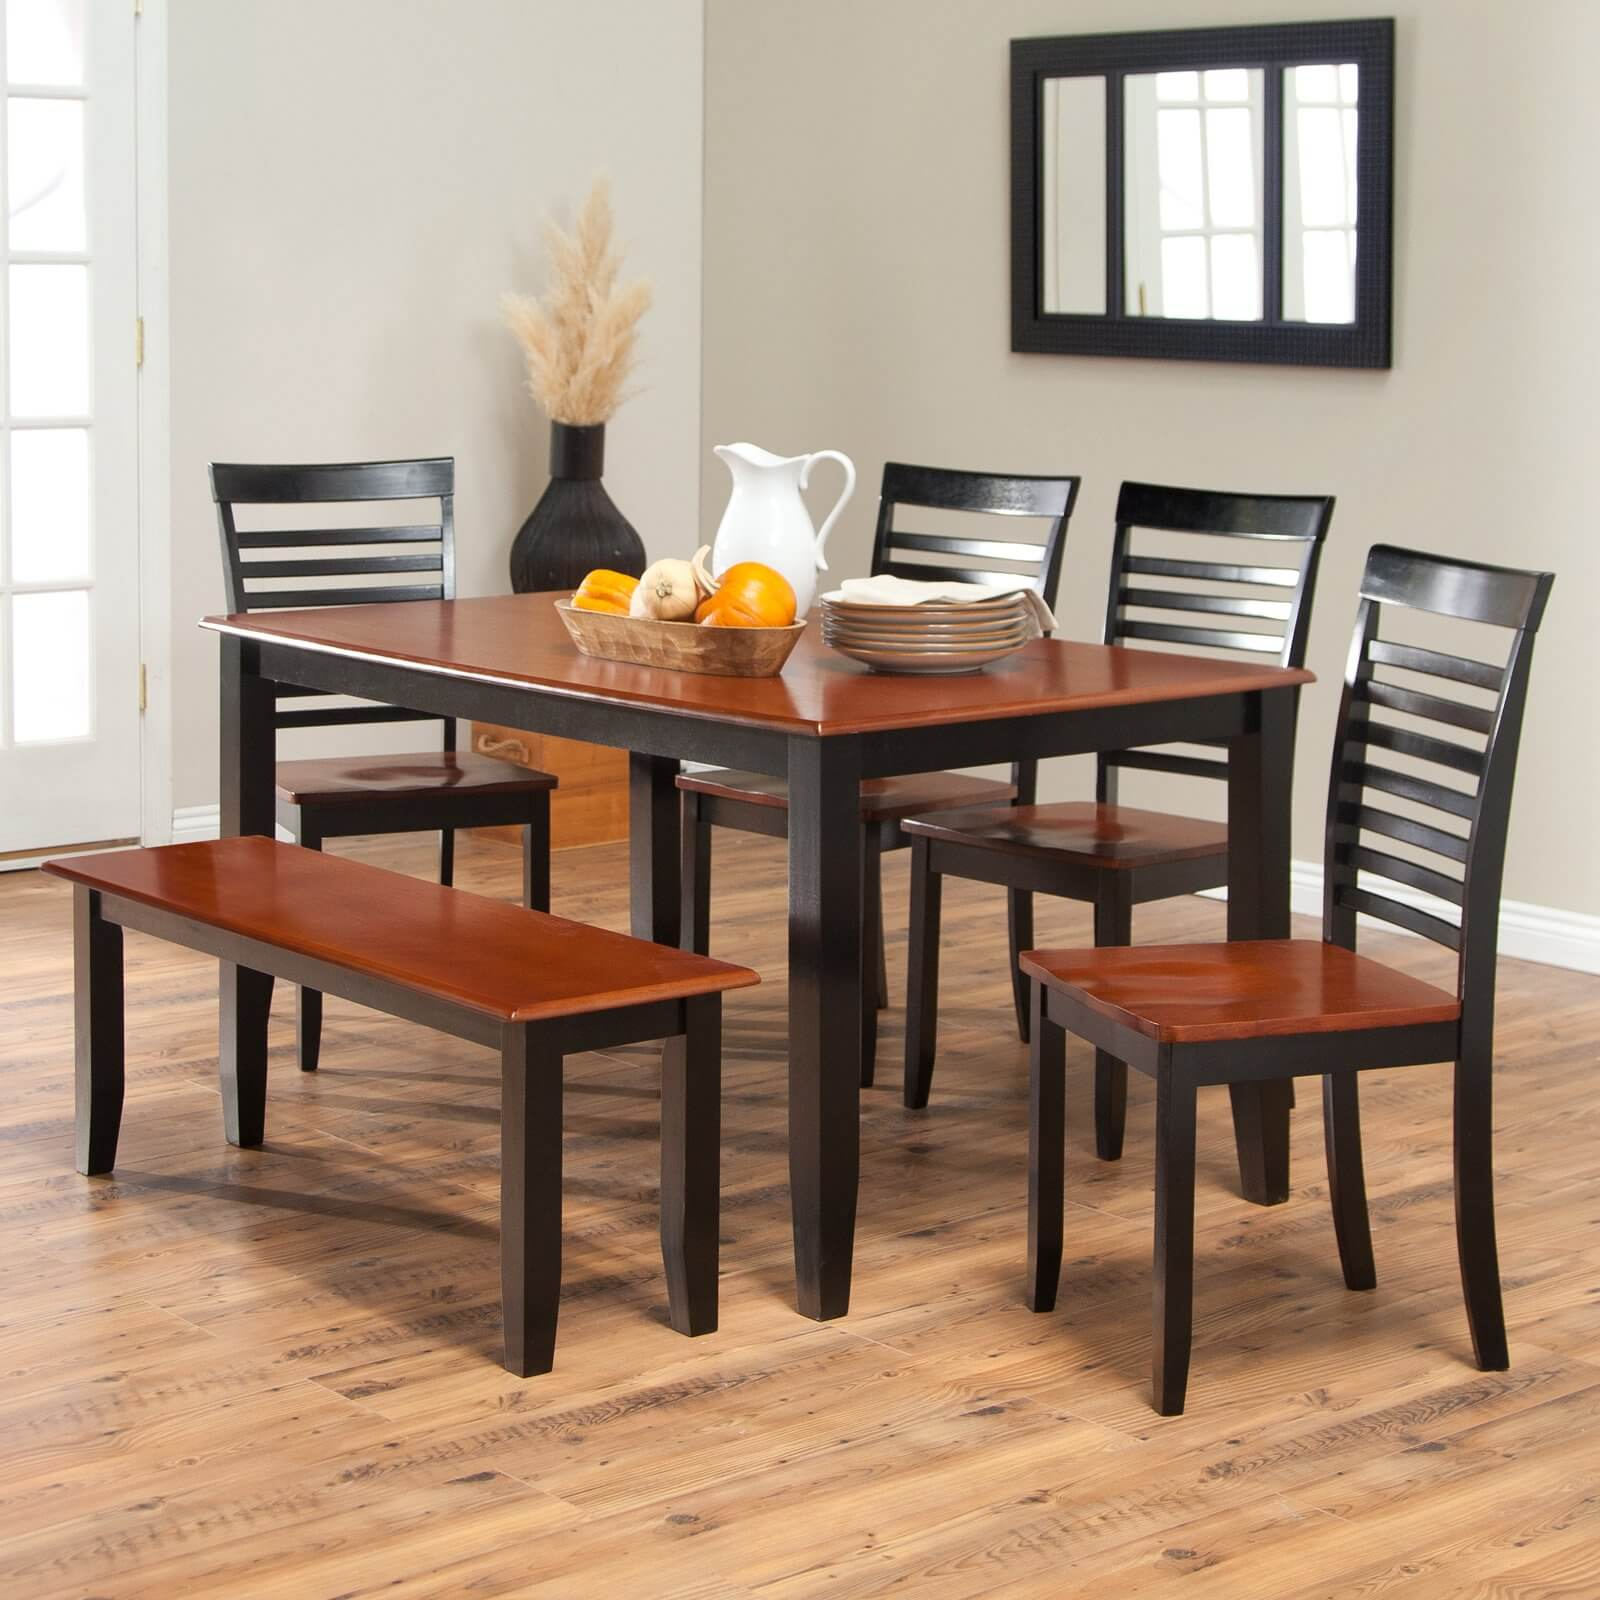 dining room: Dining Room Table With Bench Seats Black Brown Wooden ...